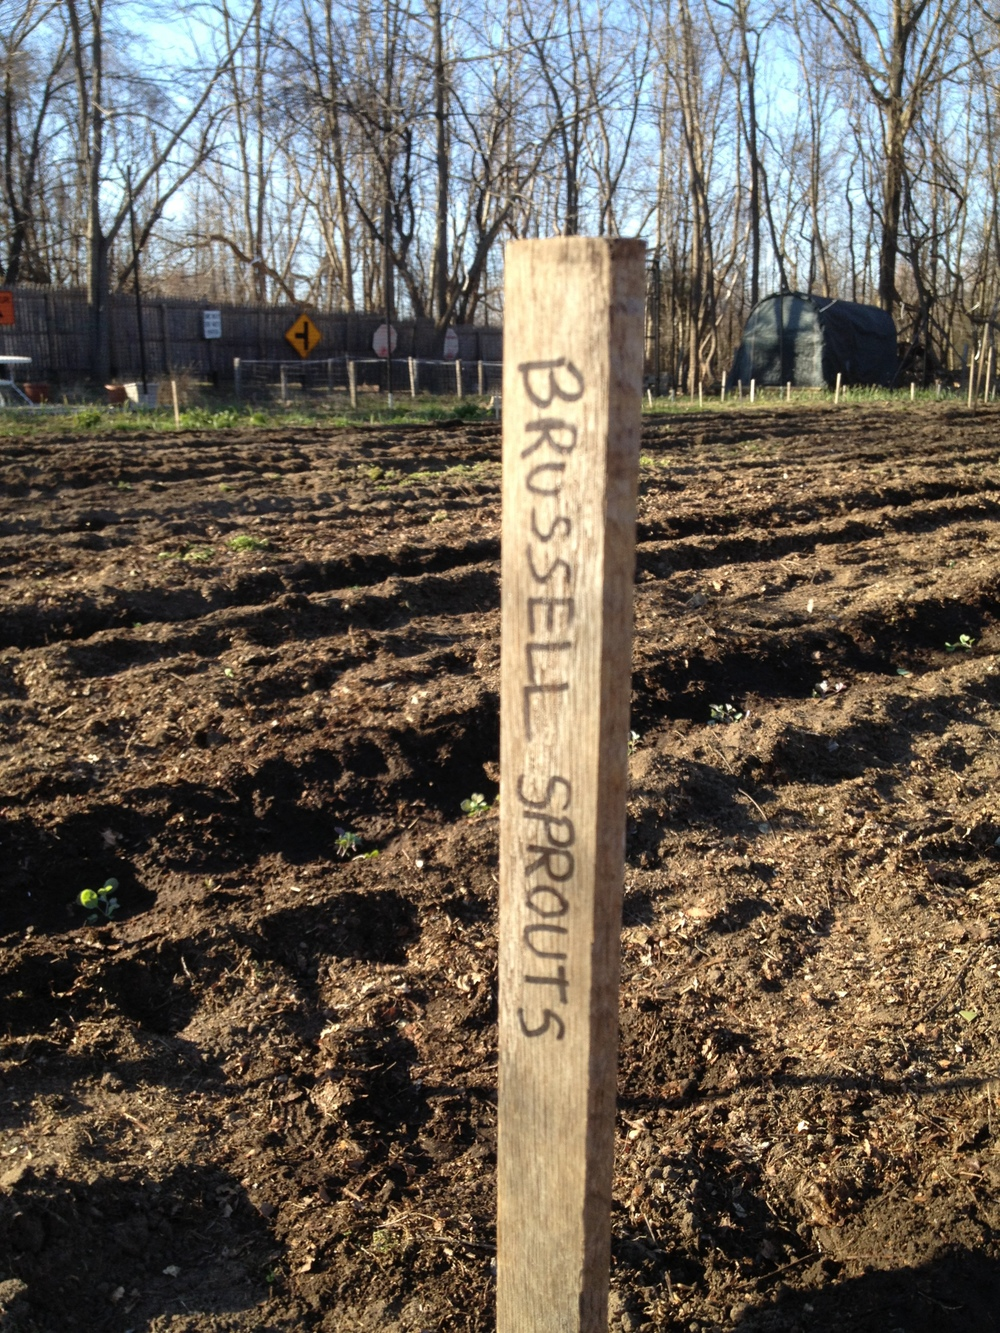 We are planting lots of brussel sprouts this spring! About 12 plants!